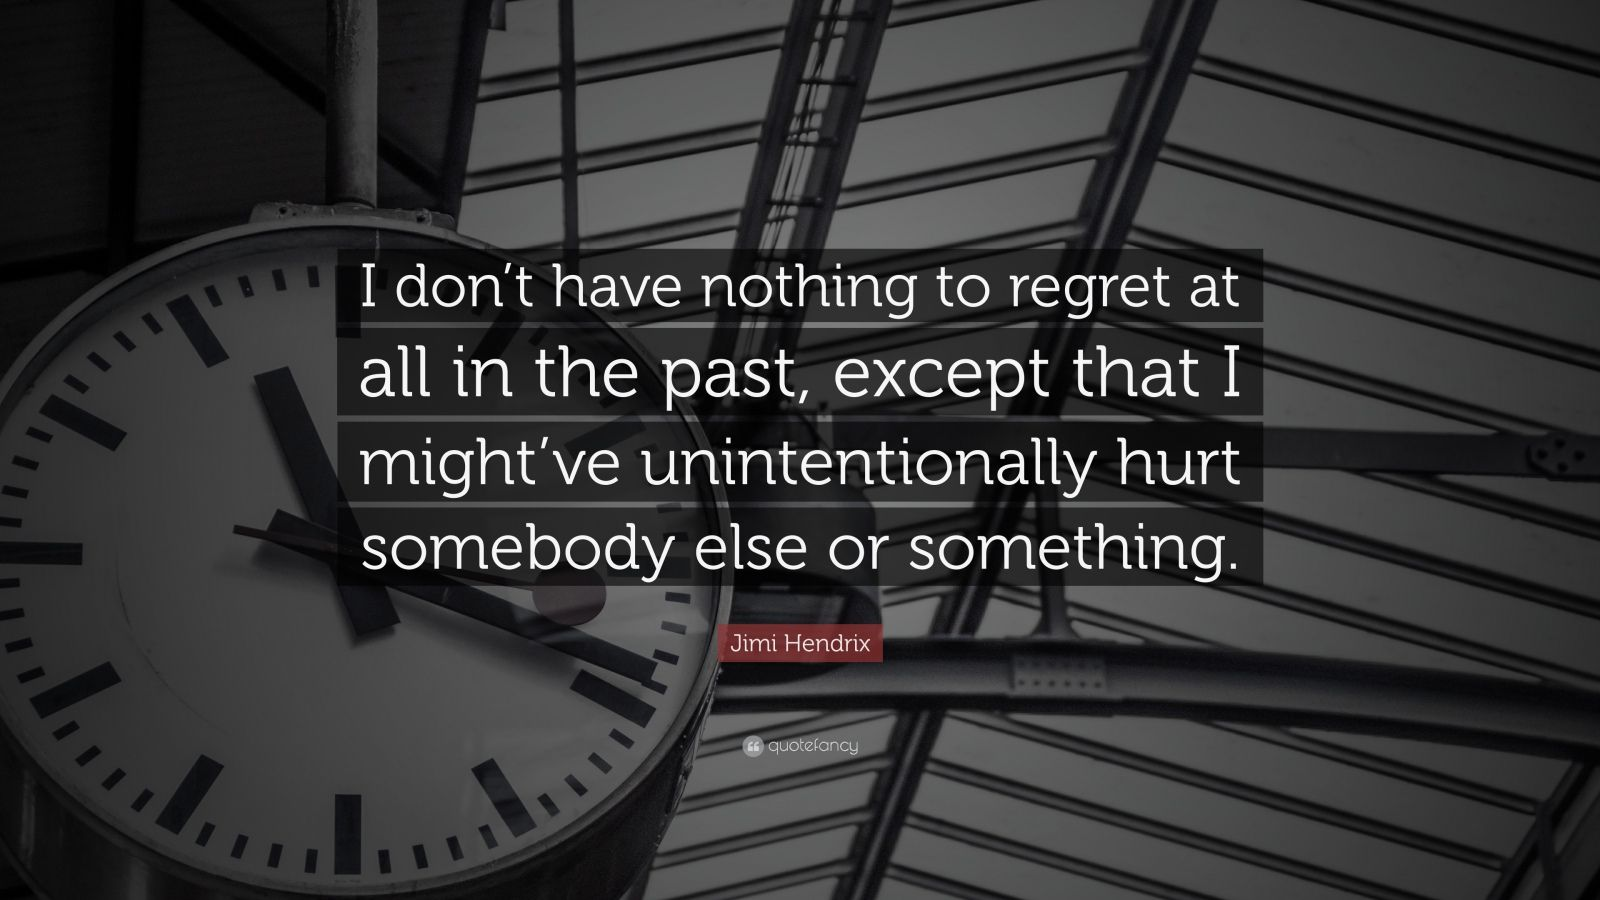 """Jimi Hendrix Quote: """"I don't have nothing to regret at all in the past, except that I might've unintentionally hurt somebody else or something."""""""